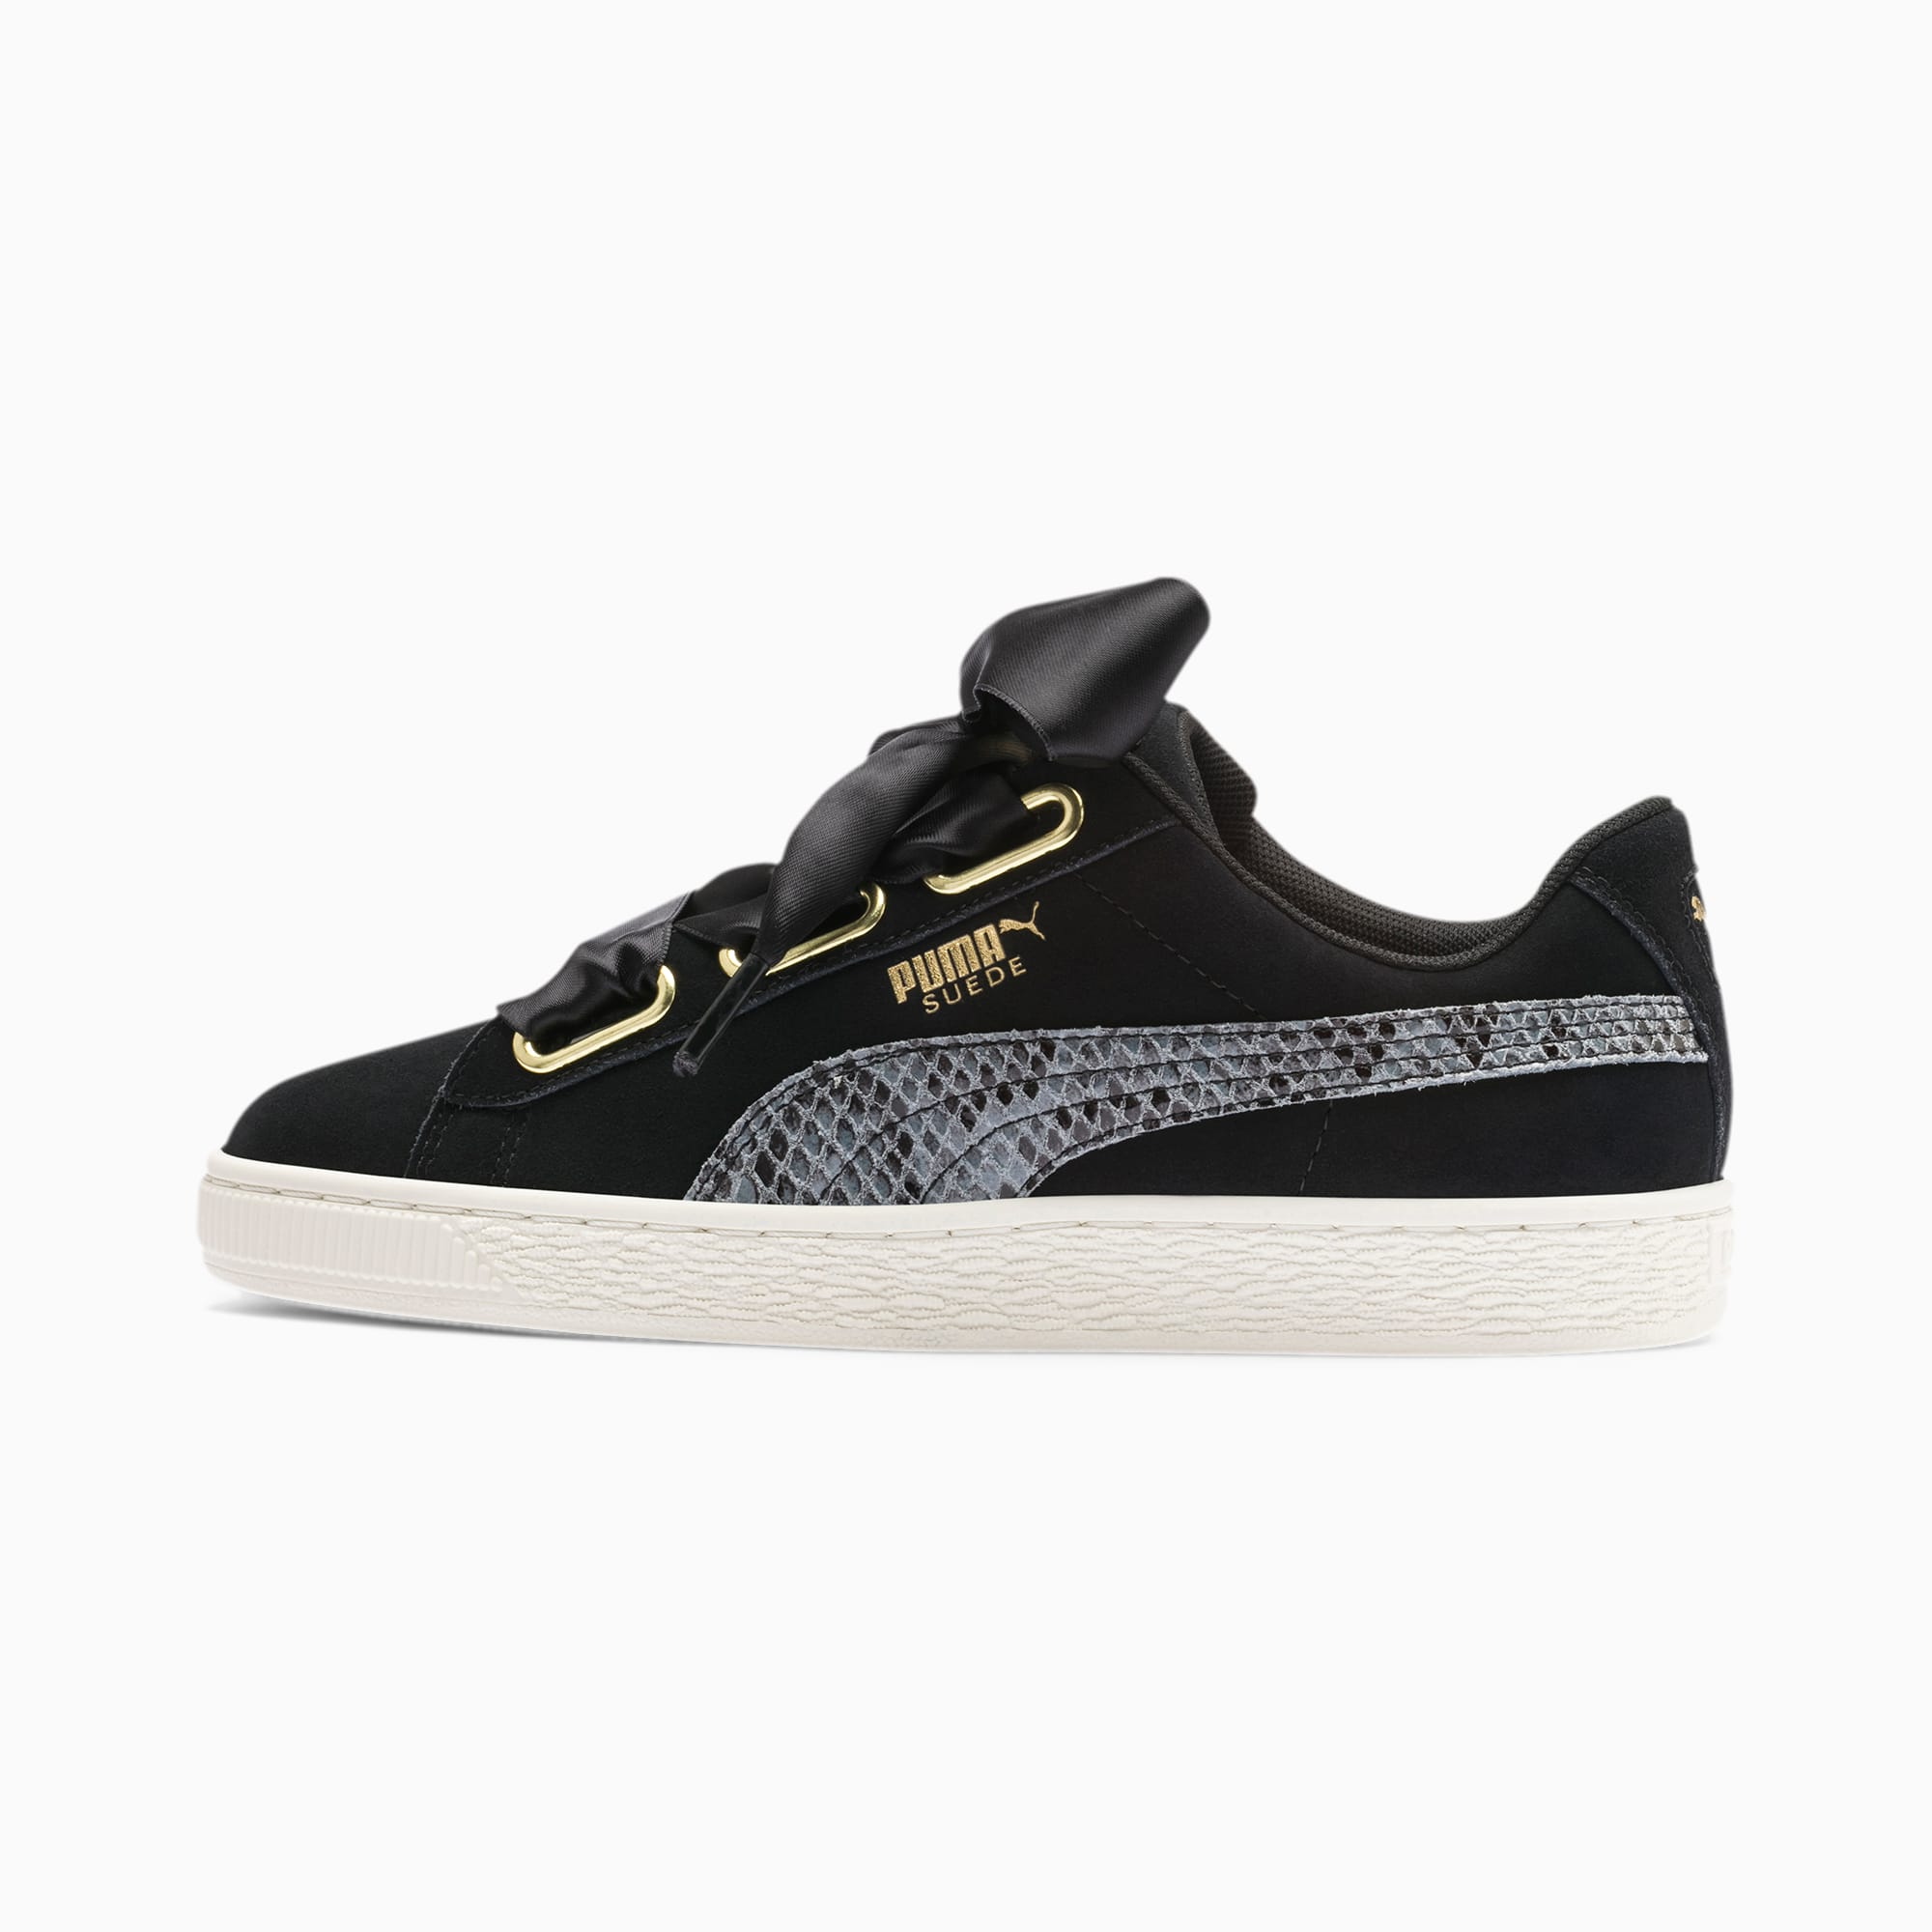 Suede Heart Snake Lux Women's Sneakers